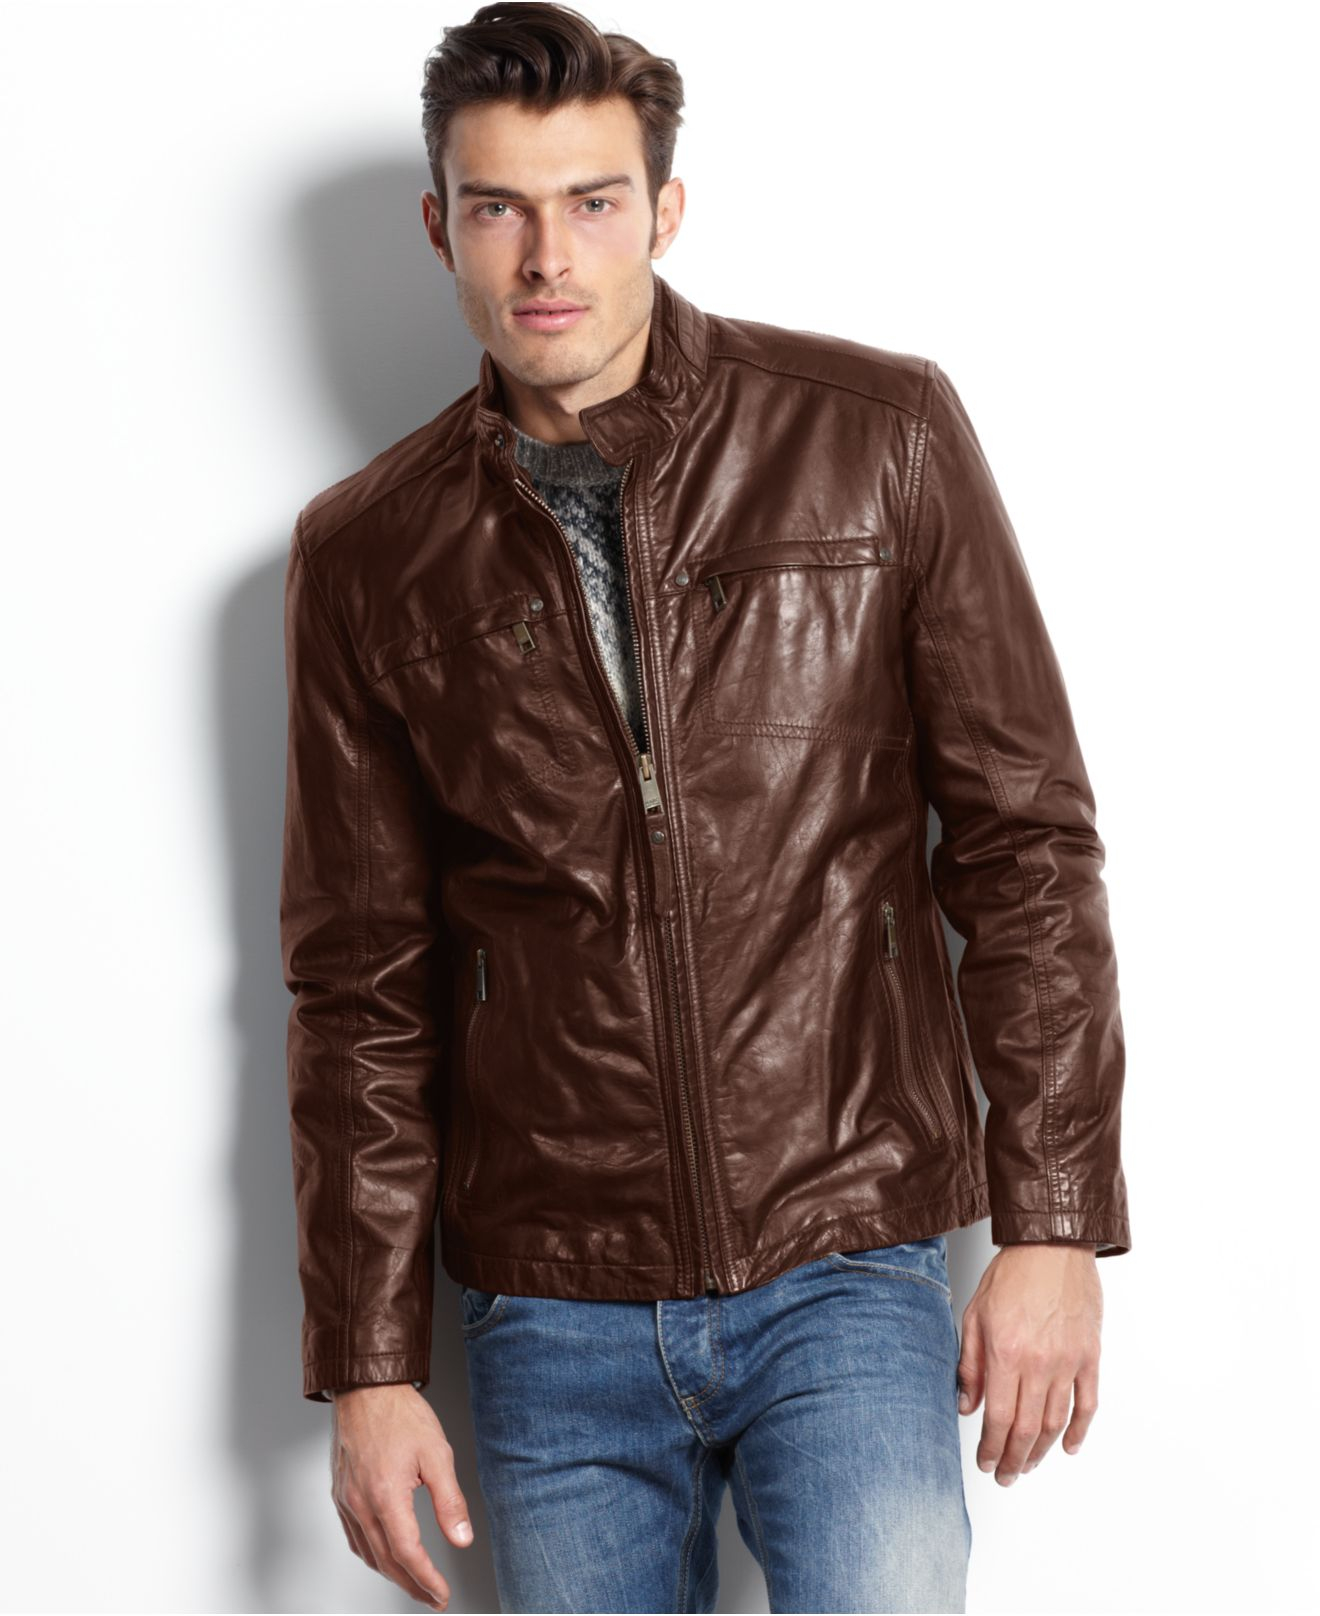 Vintage Leather Jackets Mens - Best Jacket 2017